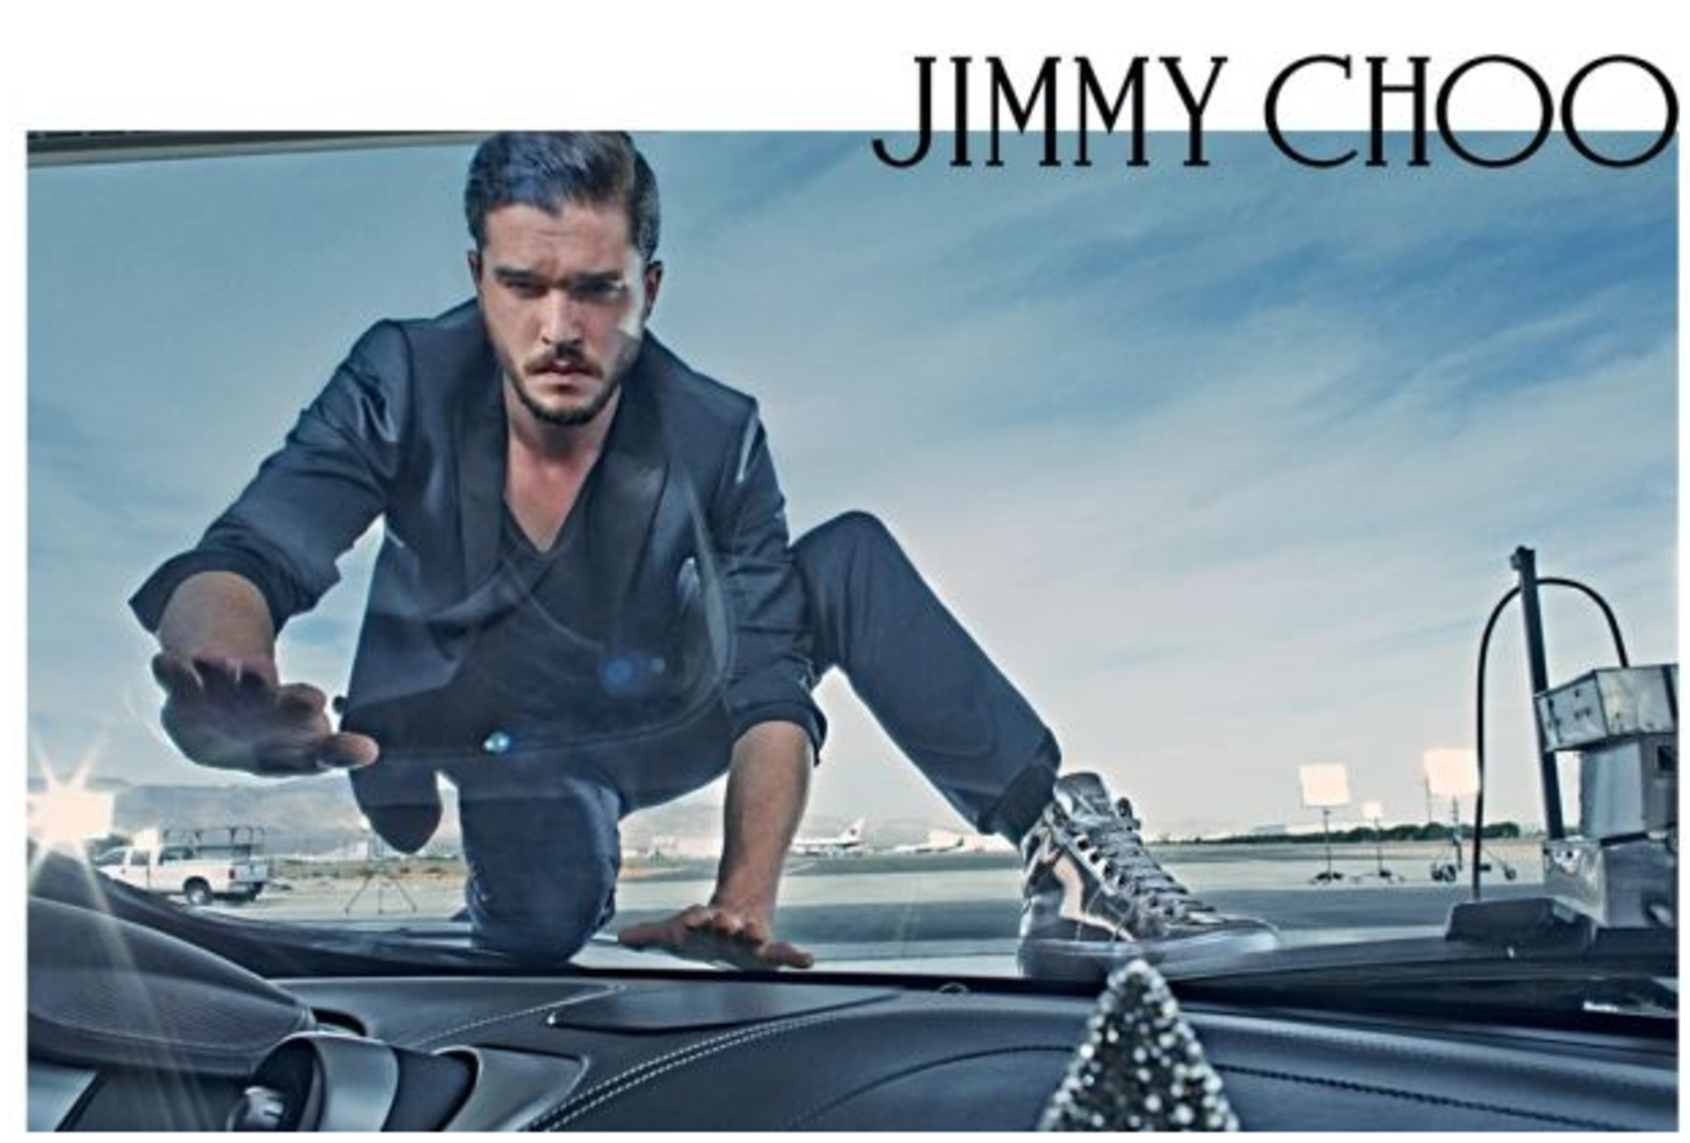 See Game of Thrones star Kit Harrington for Jimmy Choo